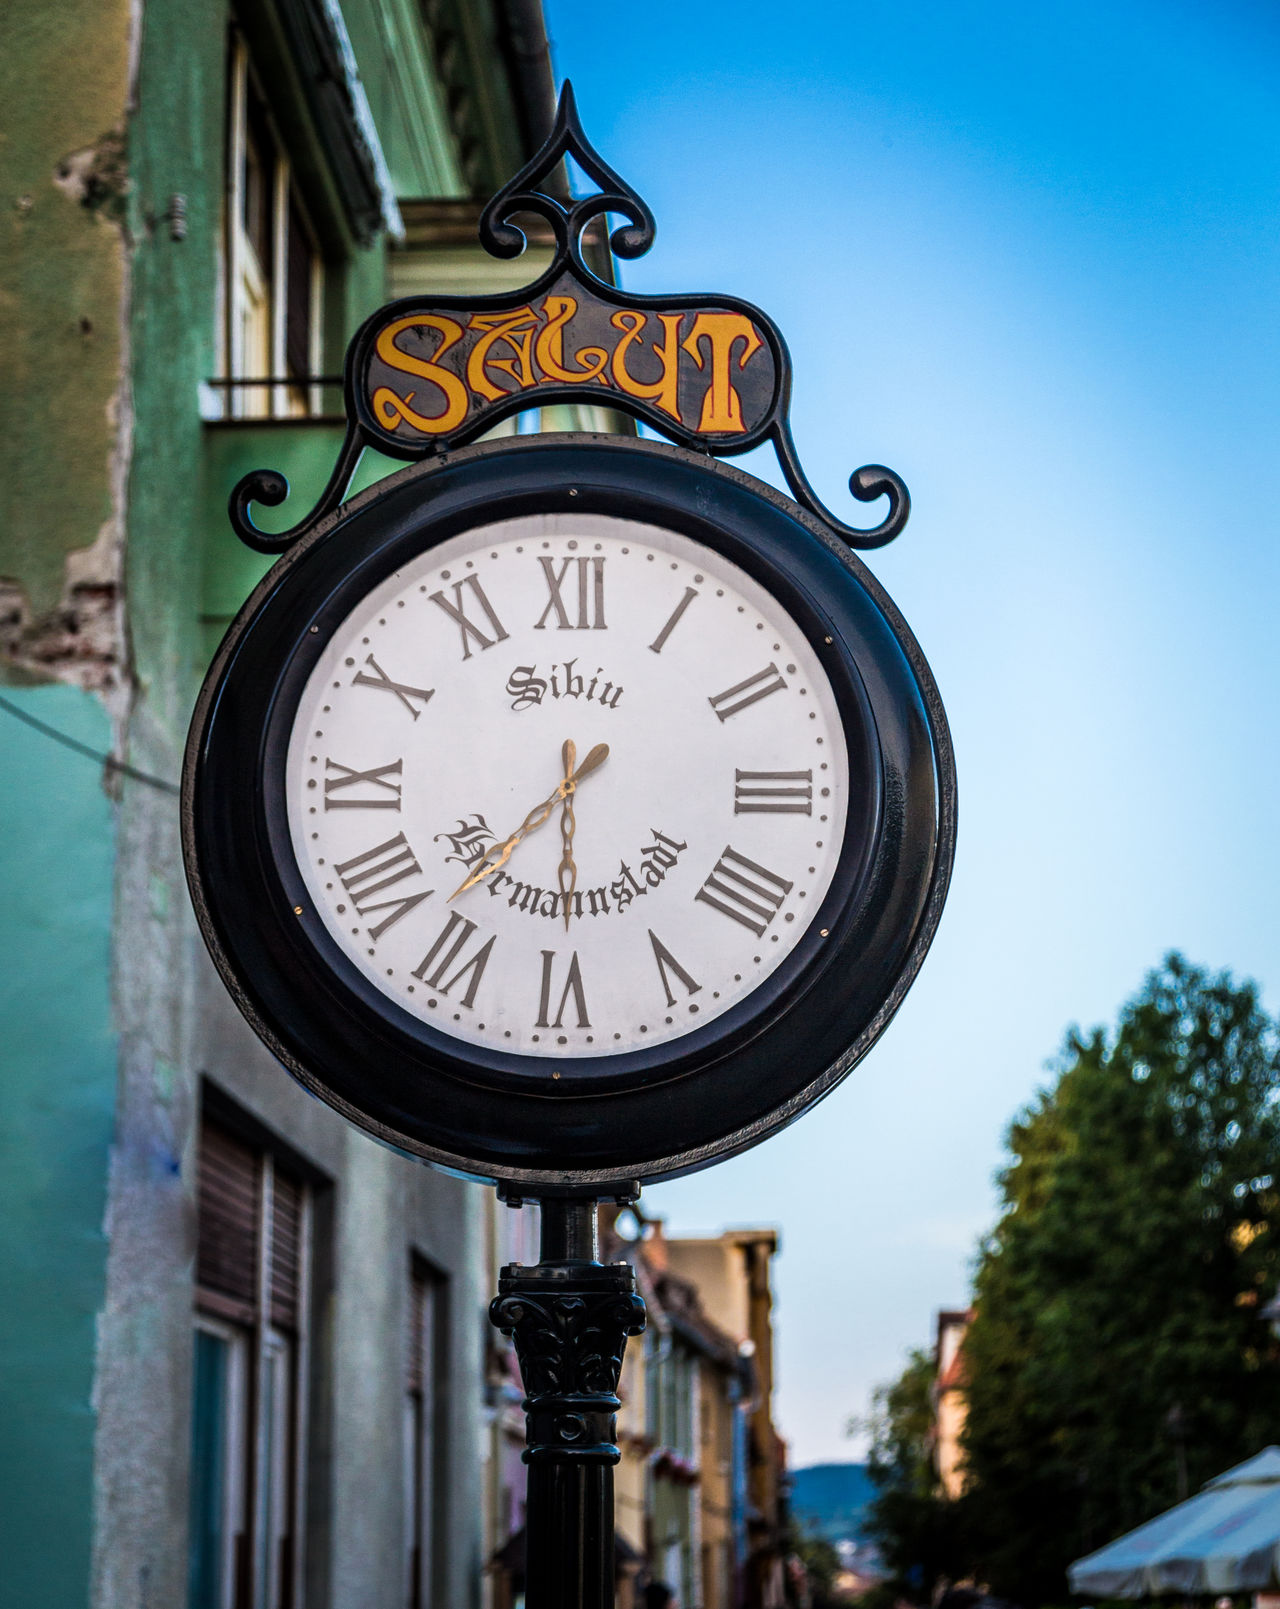 Adventure Architecture Building Exterior Clock Clock Face Clock Tower Close-up Day Eastern Europe Explore Hour Hand Minute Hand No People Old-fashioned Outdoors Roman Numeral Romania Sibiu Sky Time Tourism Transylvania Travel